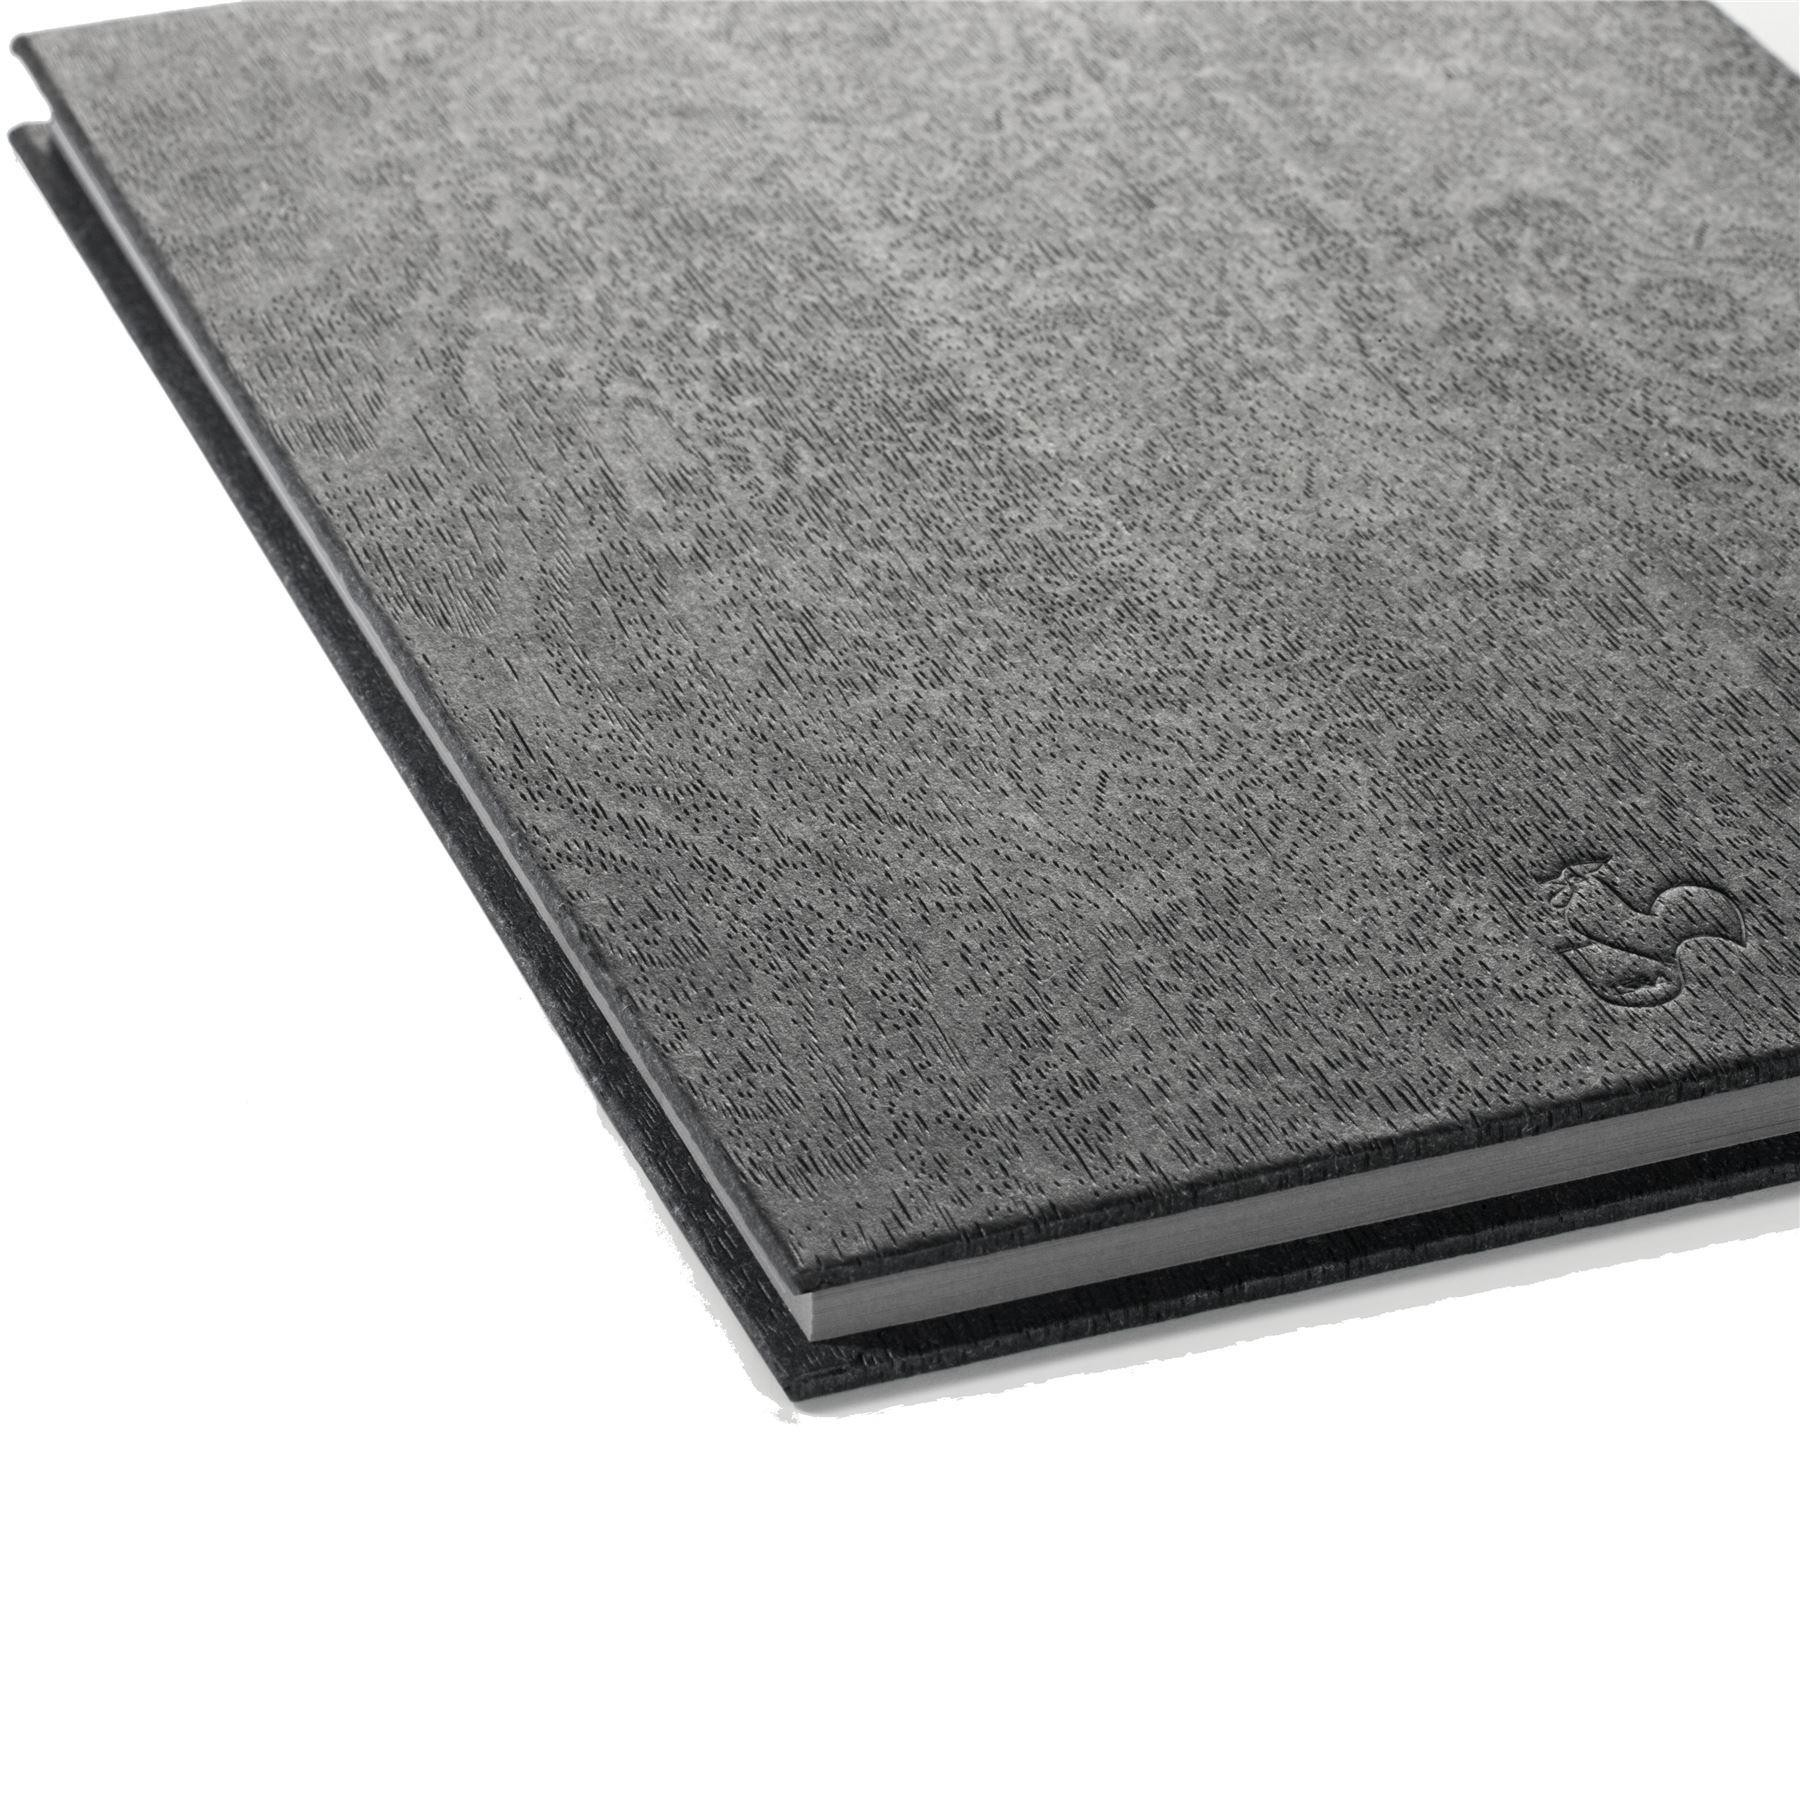 Hahnemuhler The grey book pad A5 40 sheets 120gsm sketchbook